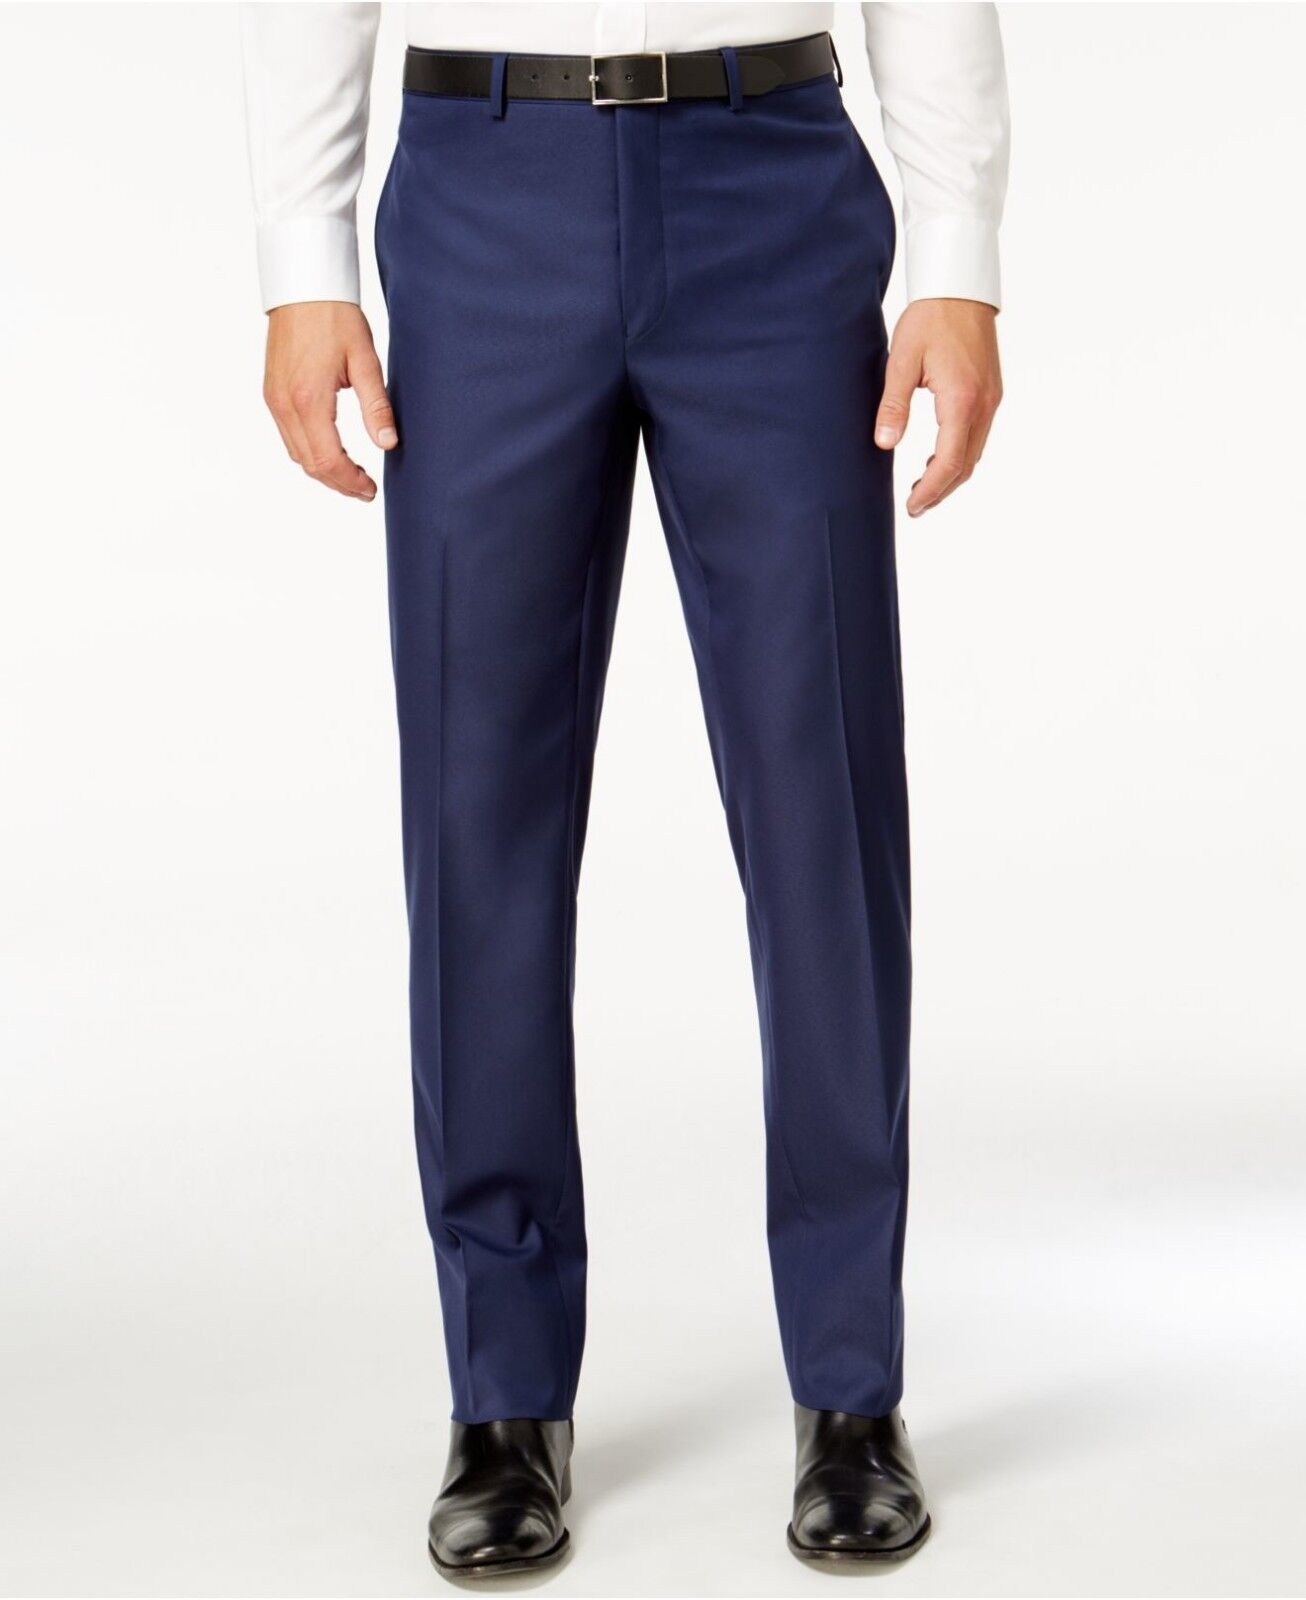 MARC NEW YORK Mens Classic Fit Trousers bluee Solid FLAT FRONT PANTS 39W